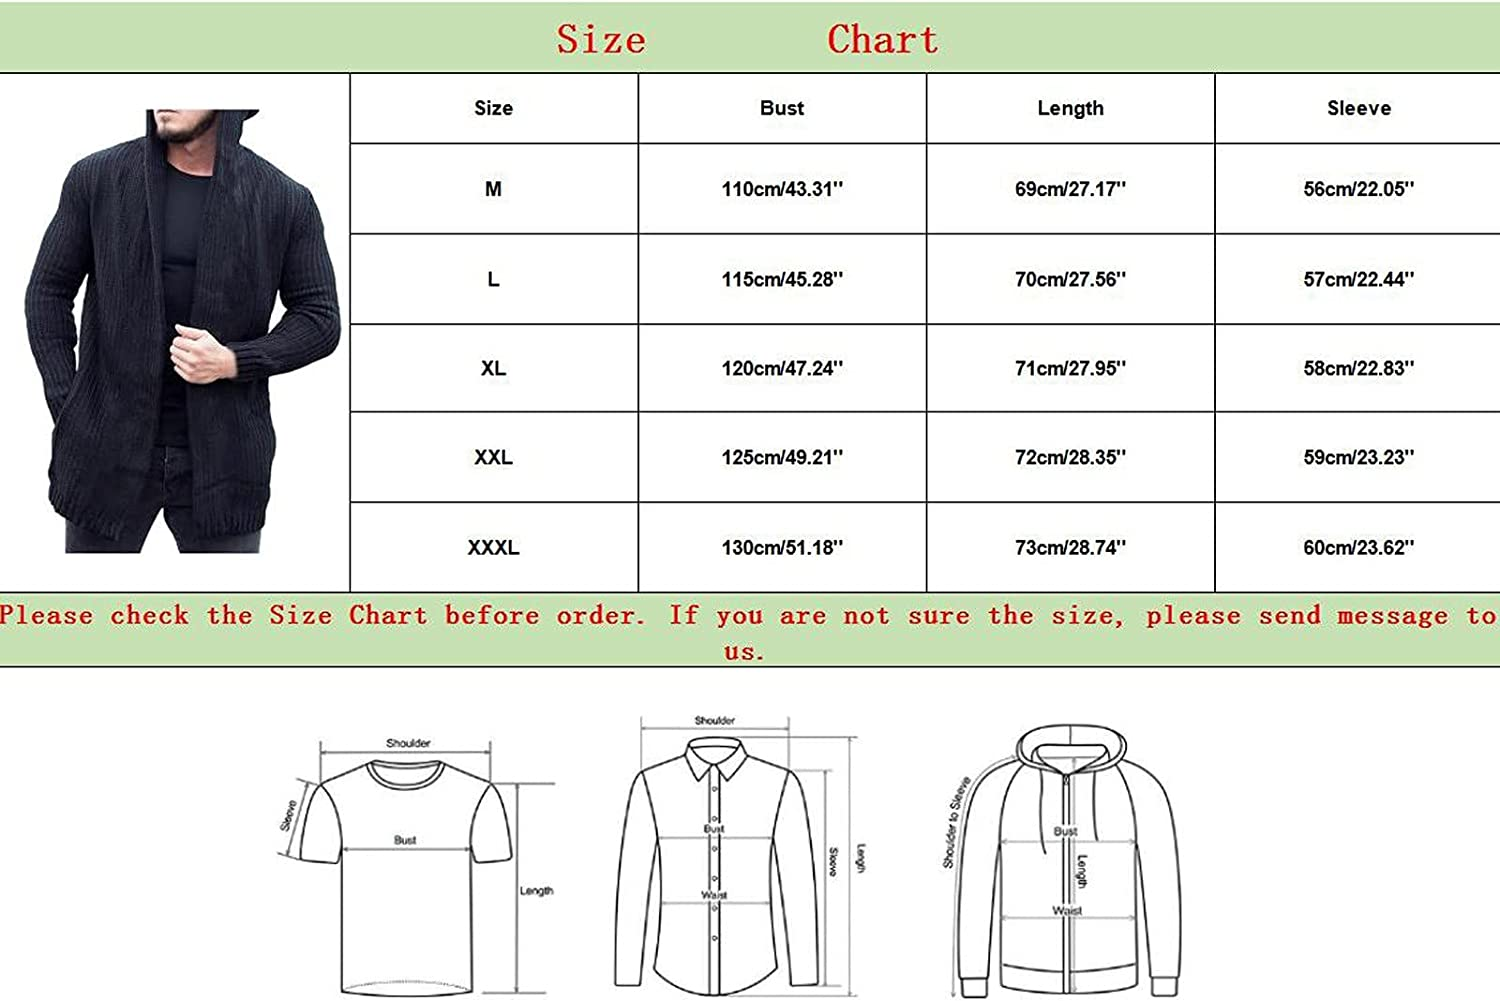 Huangse Men's Knitted Hooded Sweater Shawl Collar Mid-Length Long Sleeve Button Down Cardigan with Pockets